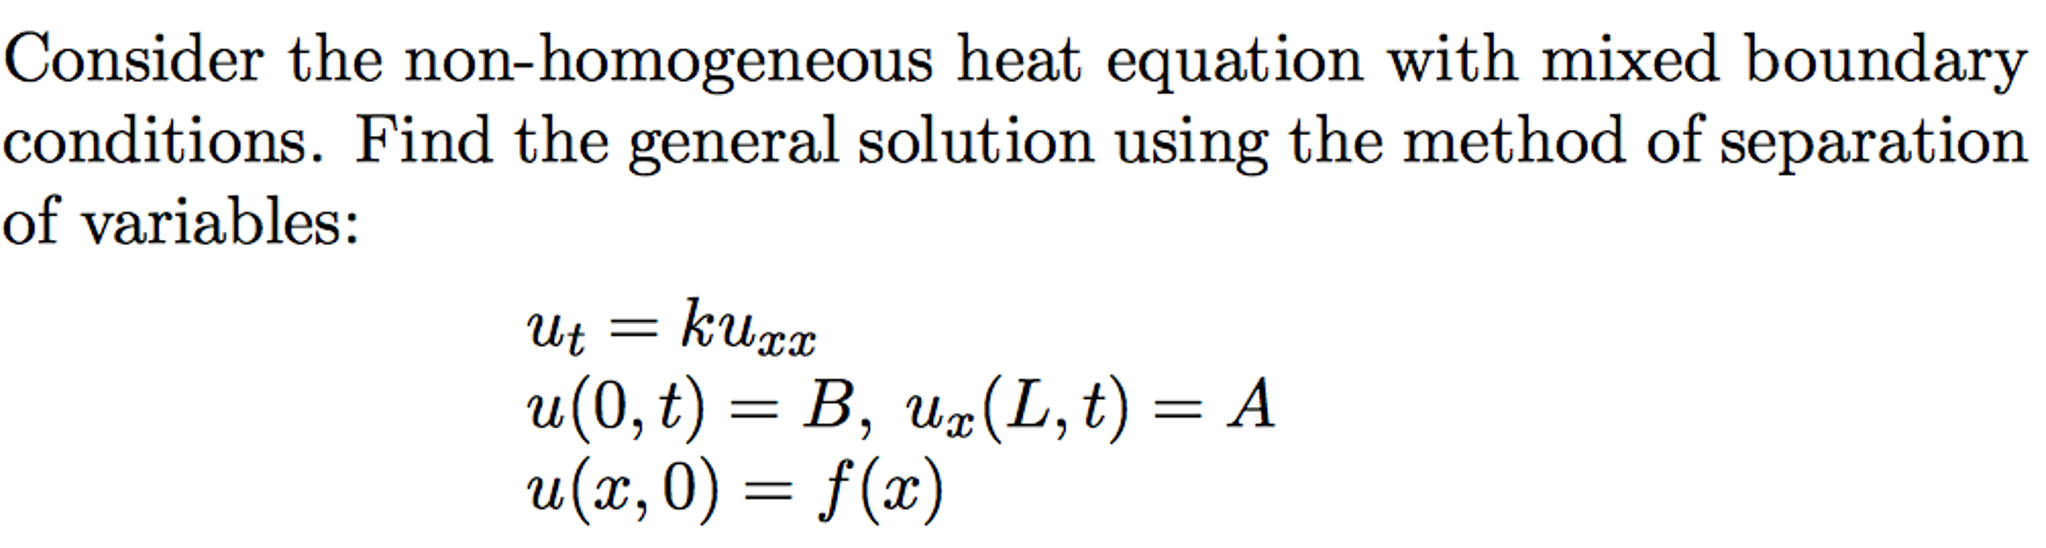 Solved: Partial Differential Equations (PDE), Non-homogene